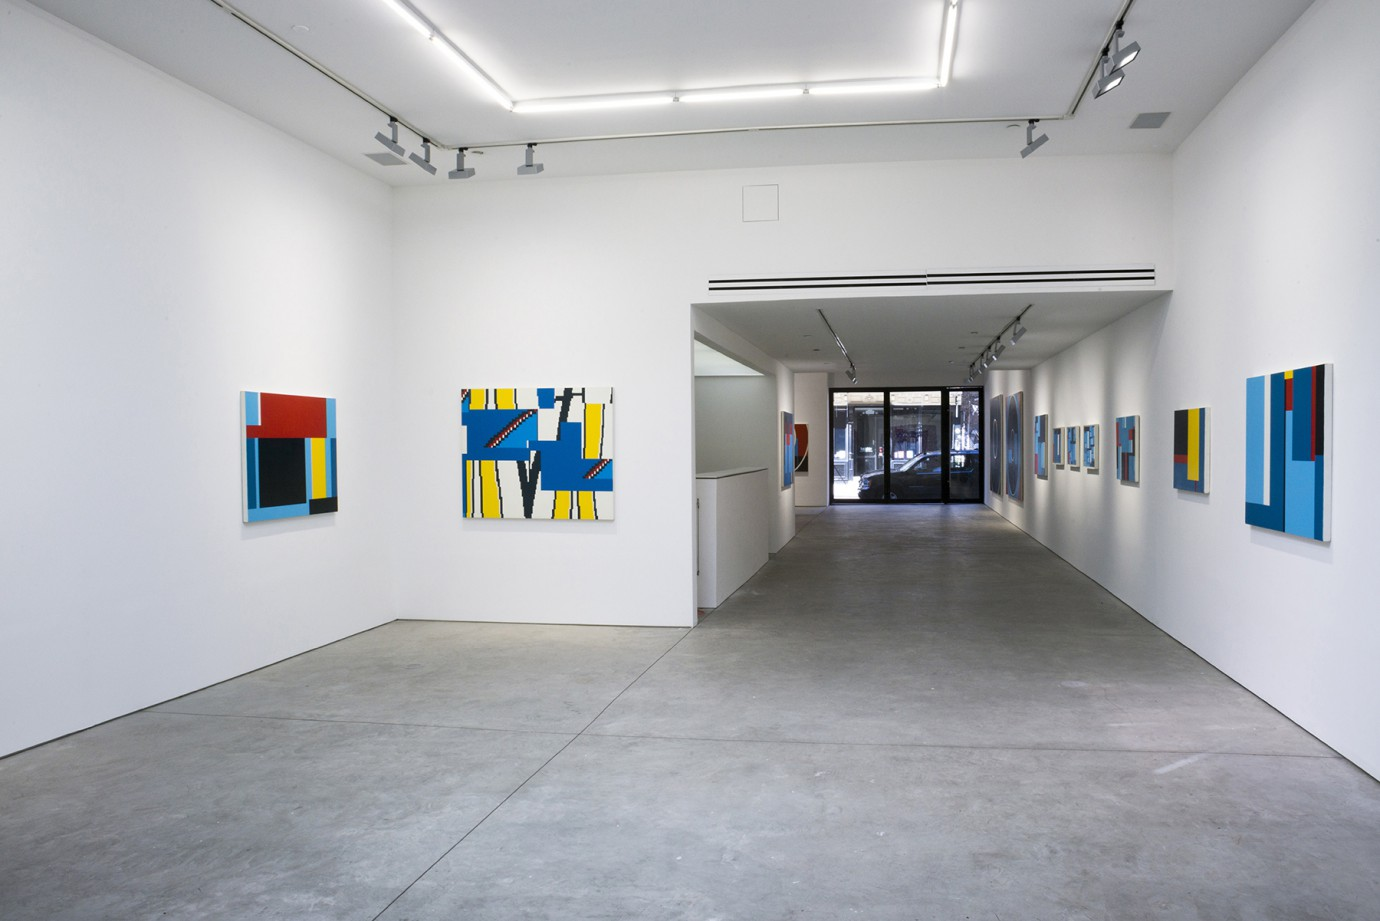 201509_Pixel Fields_Gallery_BK-10